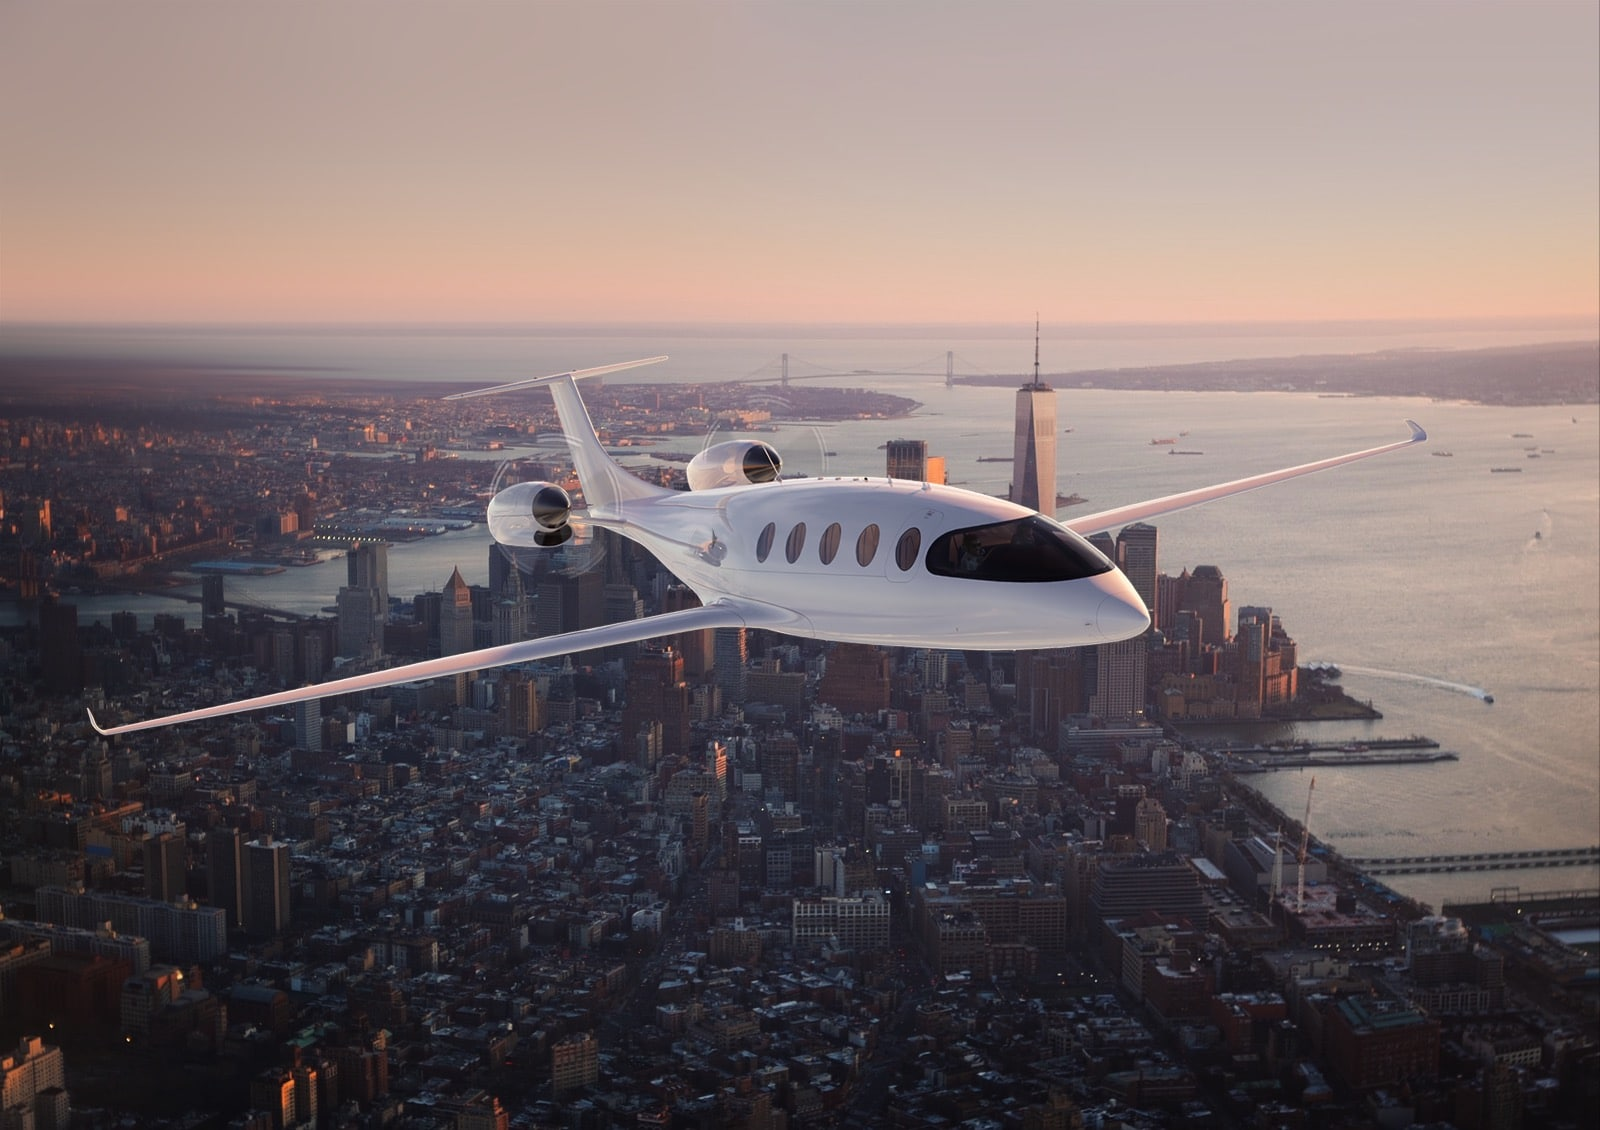 Clermont-owned Eviation in partnership with Clay Lacy Aviation